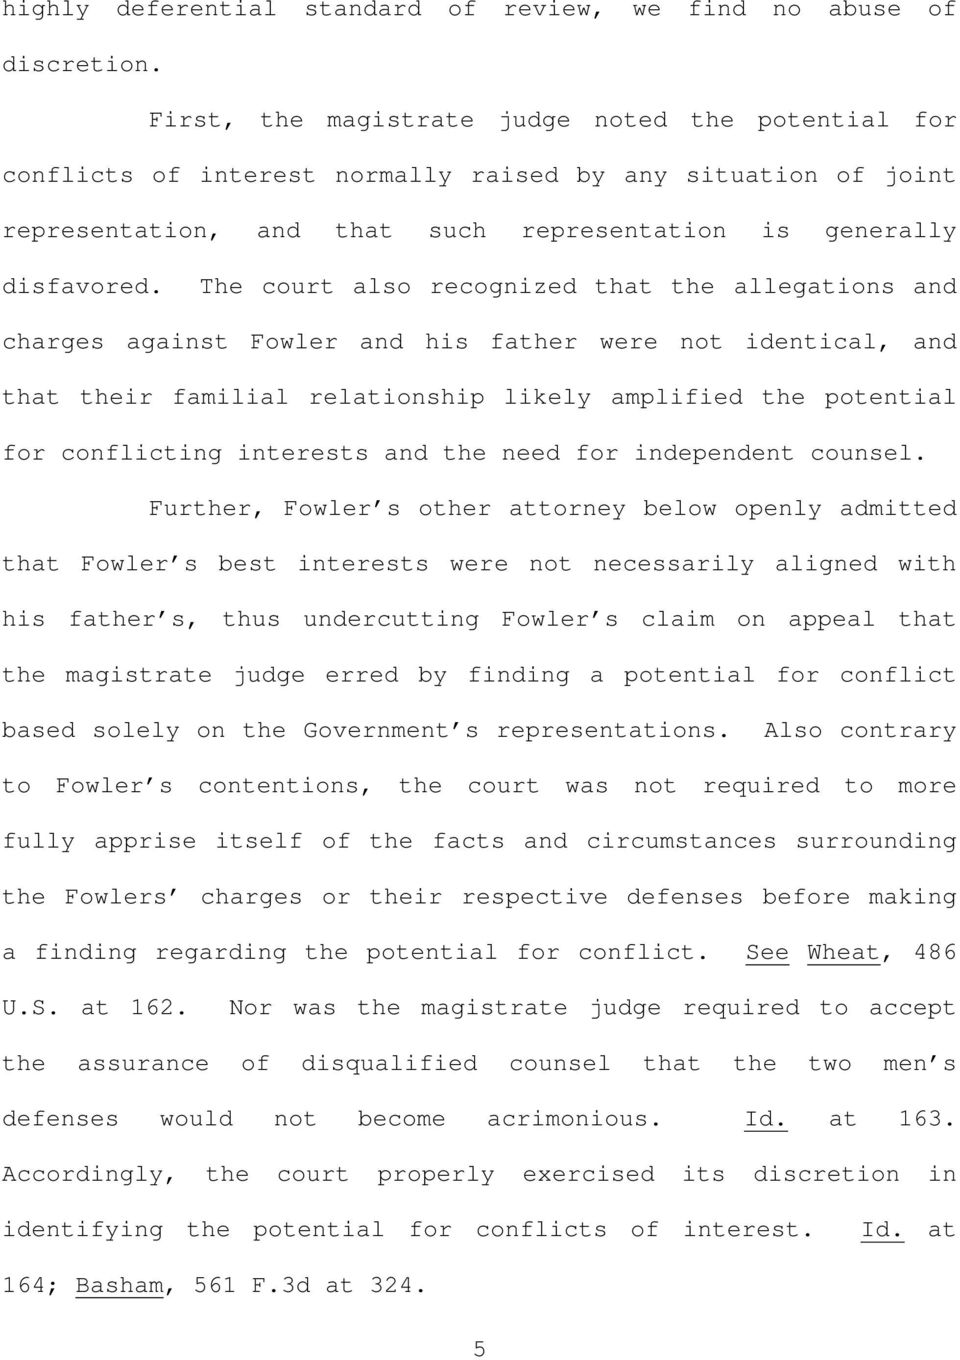 The court also recognized that the allegations and charges against Fowler and his father were not identical, and that their familial relationship likely amplified the potential for conflicting